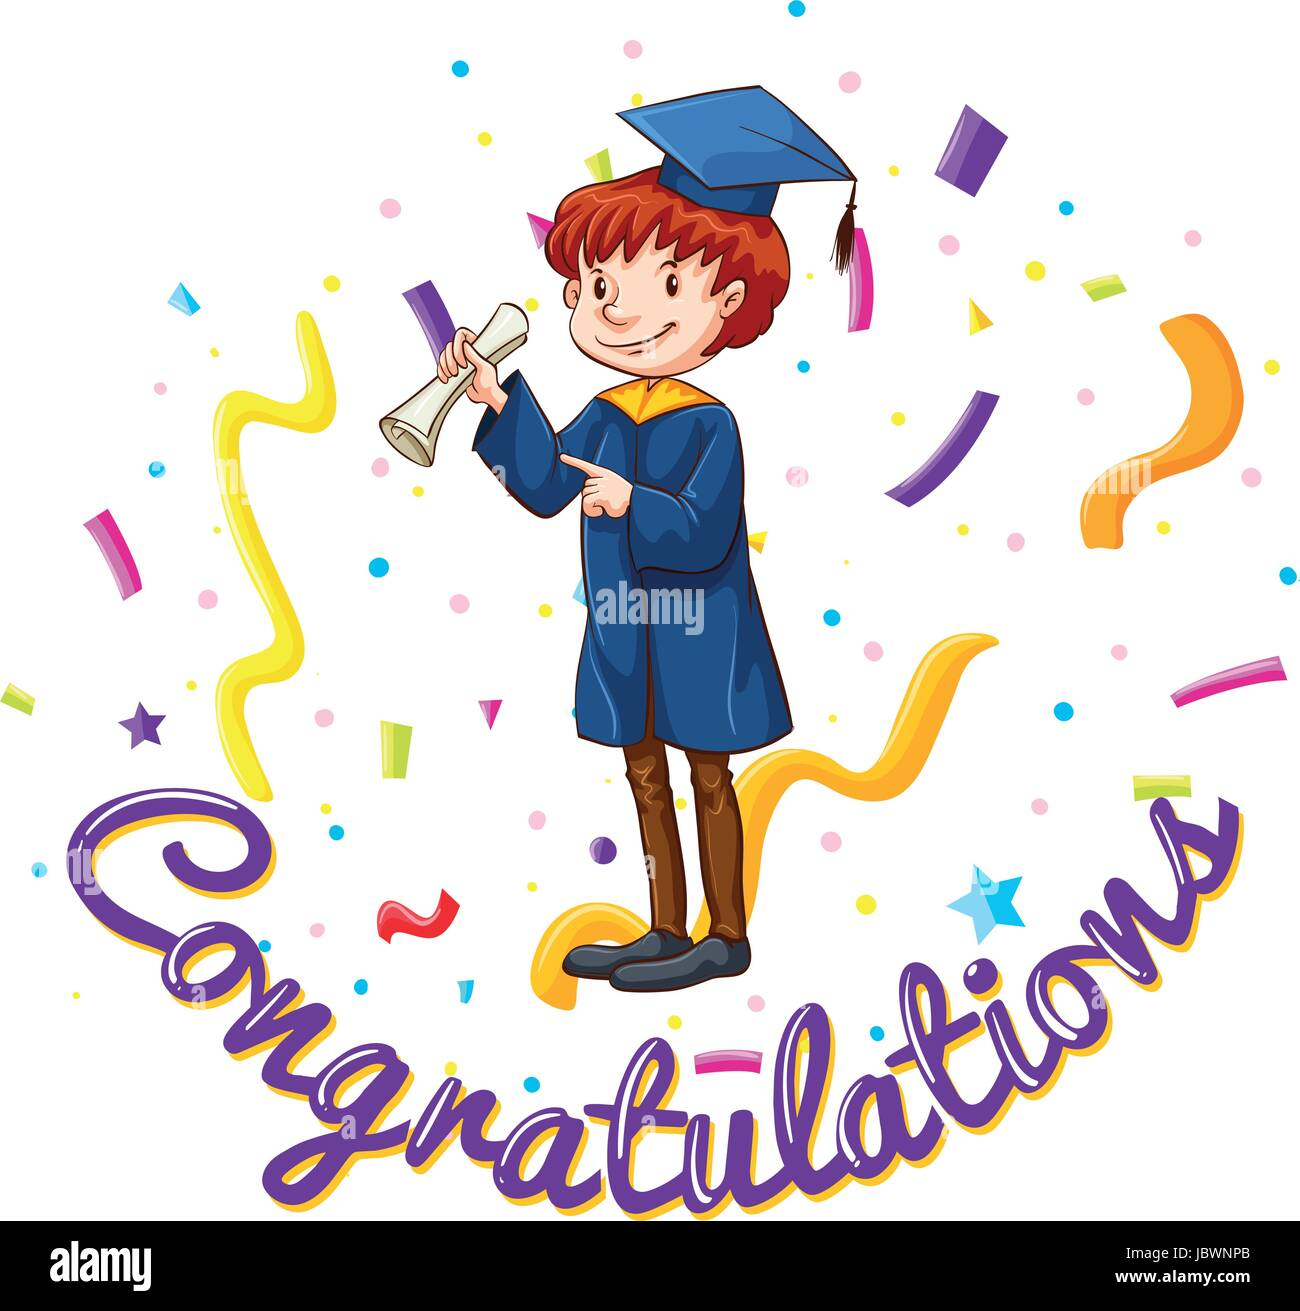 congratulations card template with man in graduation gown stock